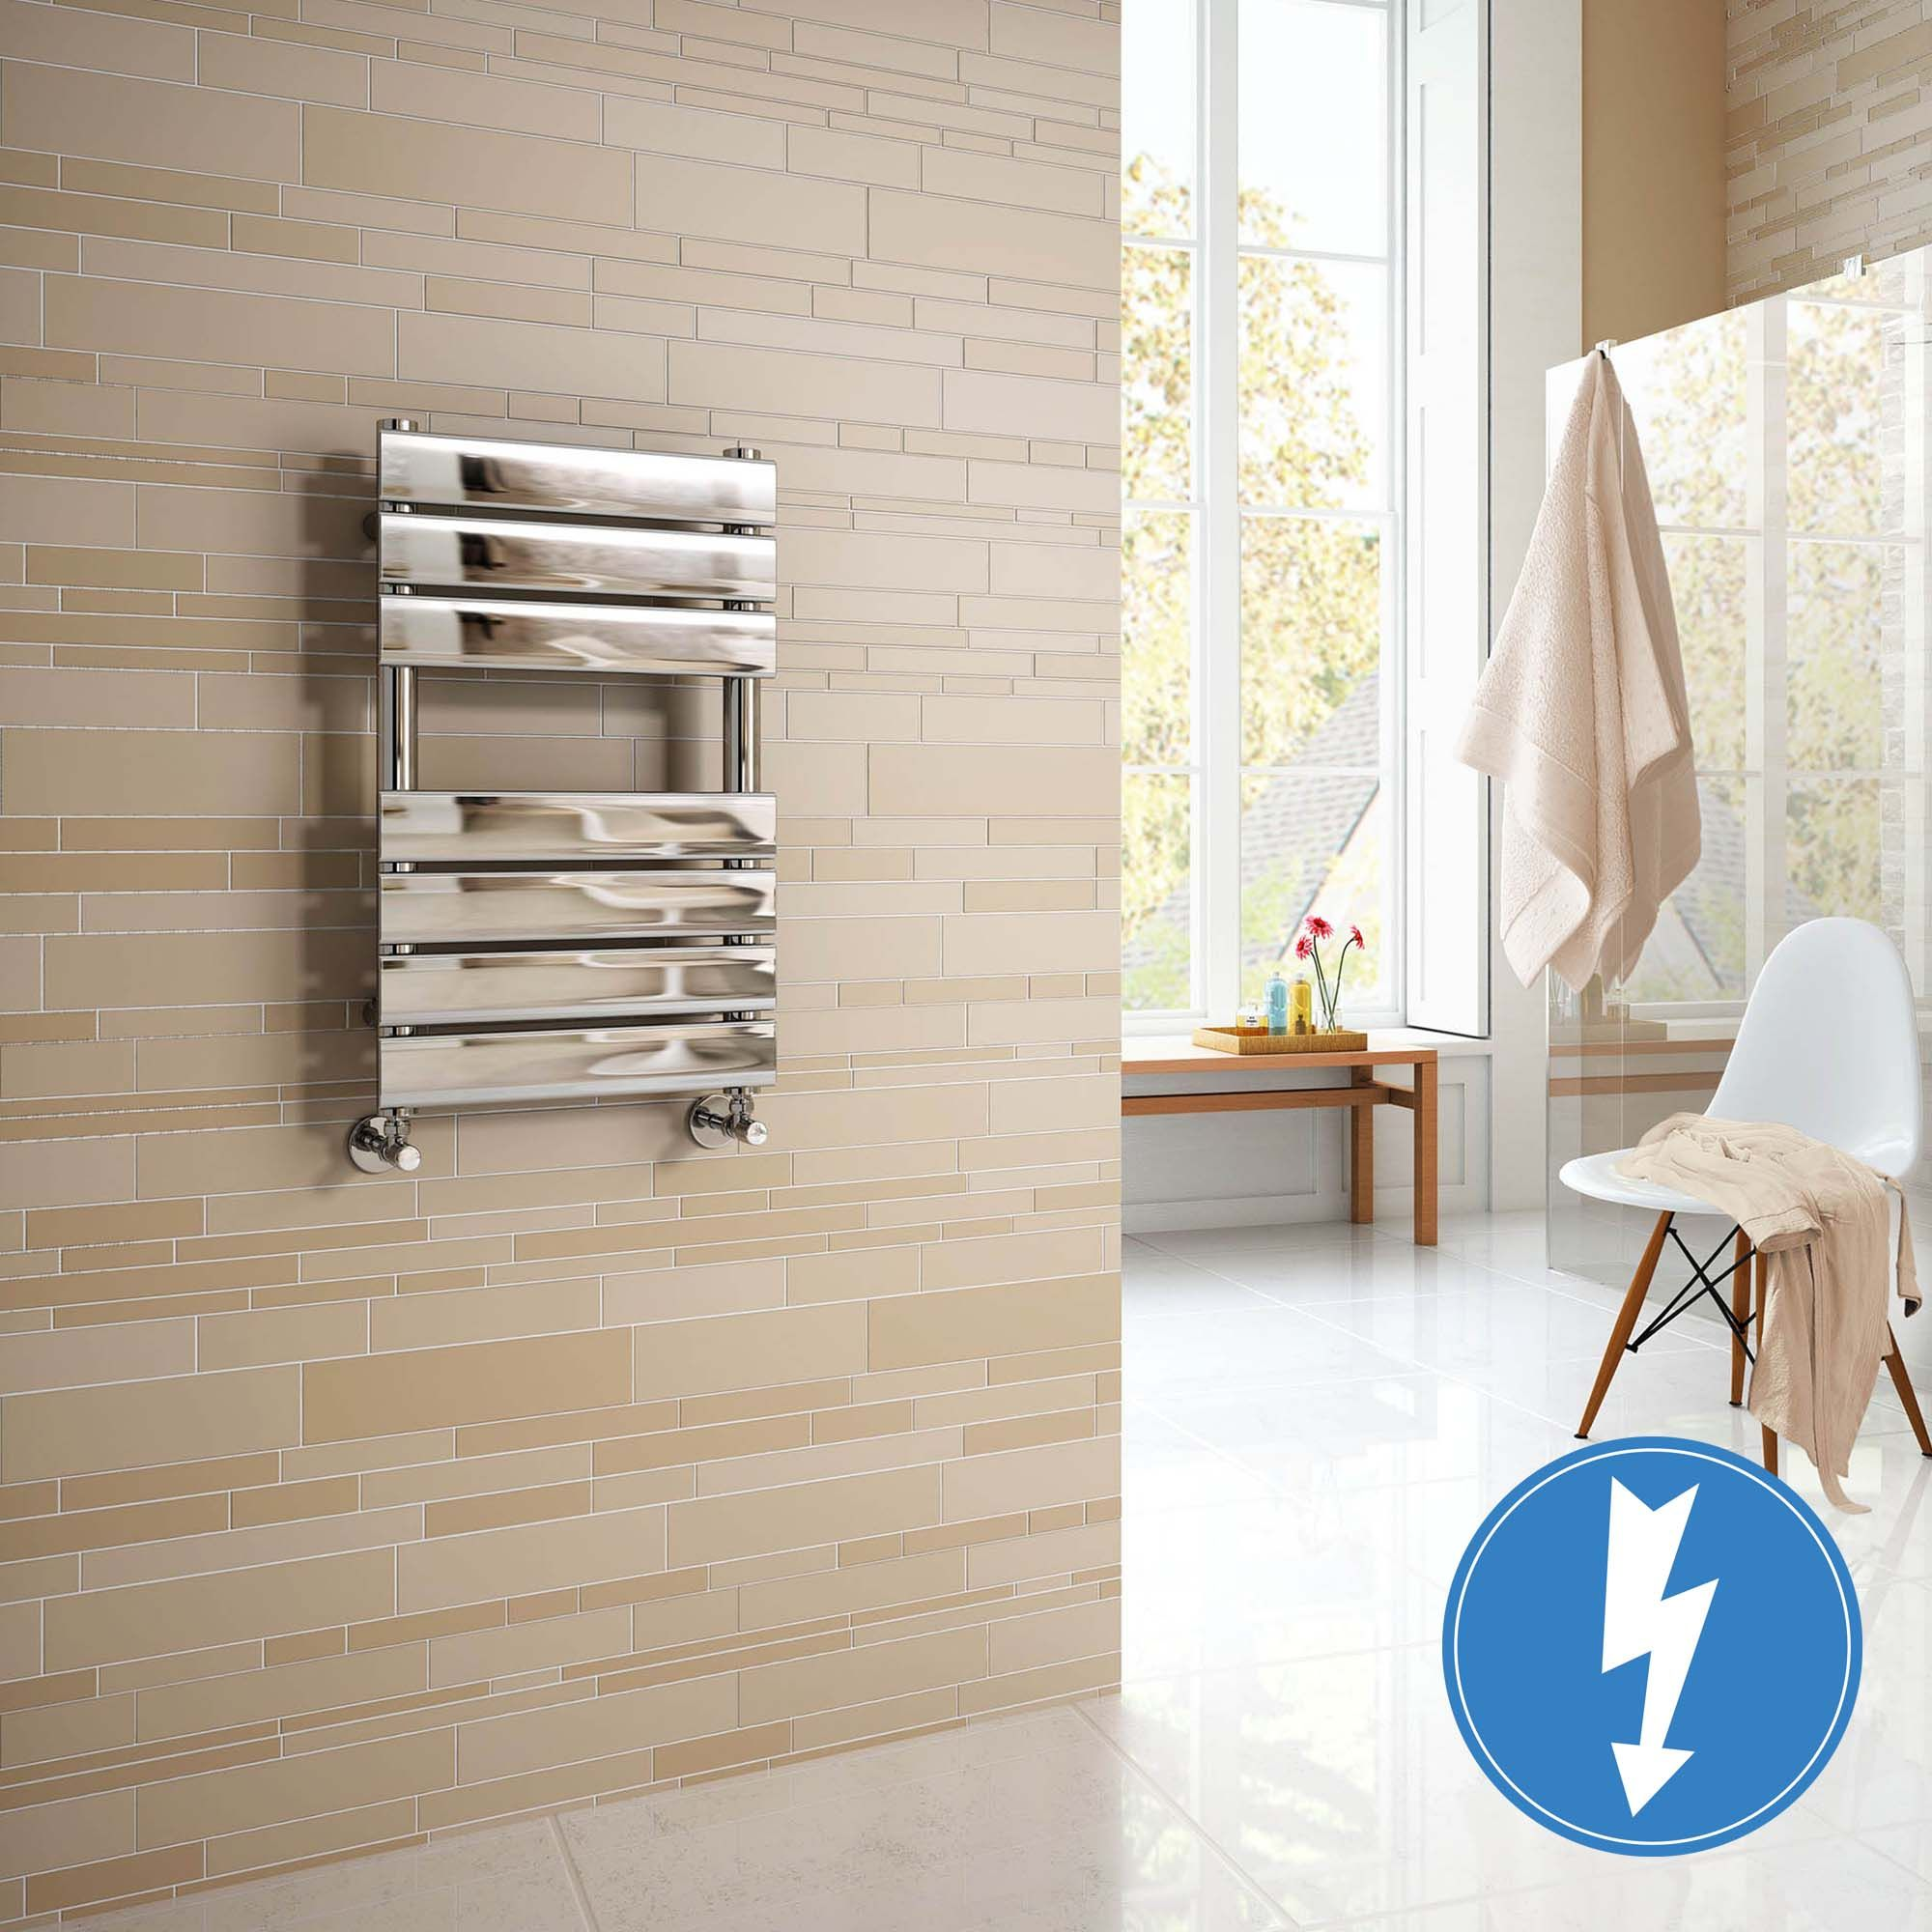 Small Bathroom Radiator Towel Rail Wall Mount Radiator Ideas - Towel rails for small bathrooms for small bathroom ideas